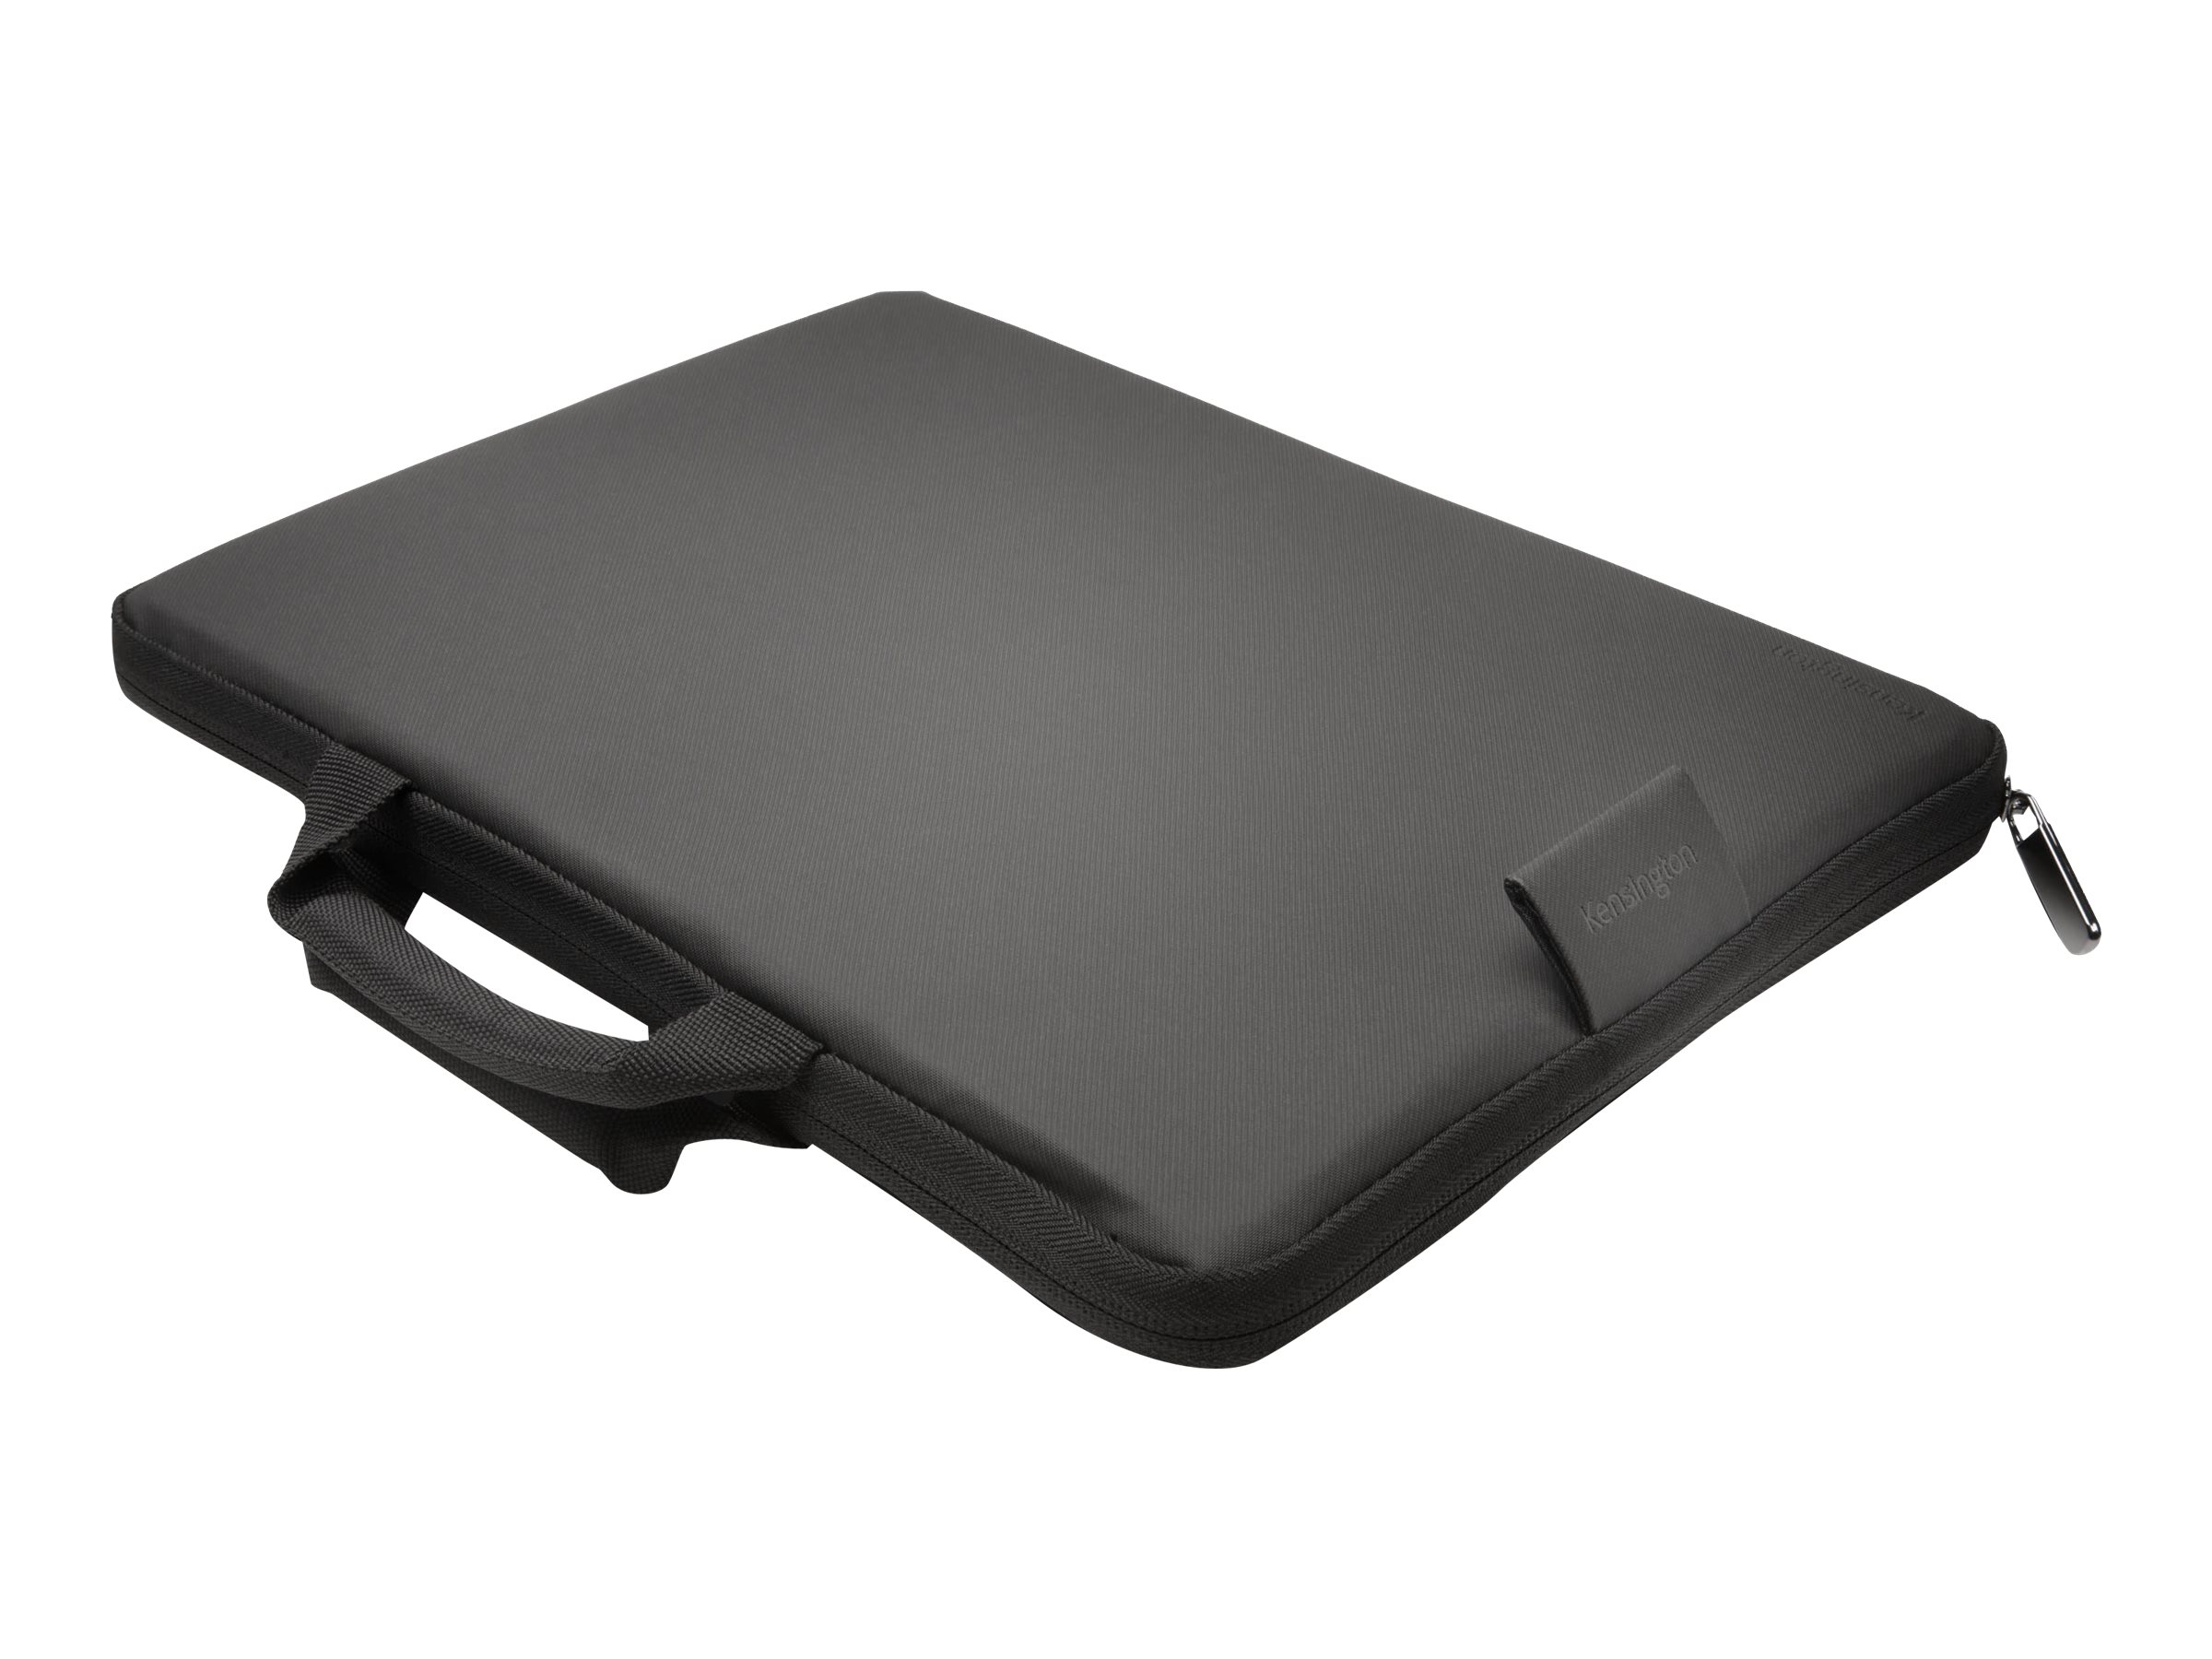 Kensington LS430 Stay-On notebook sleeve